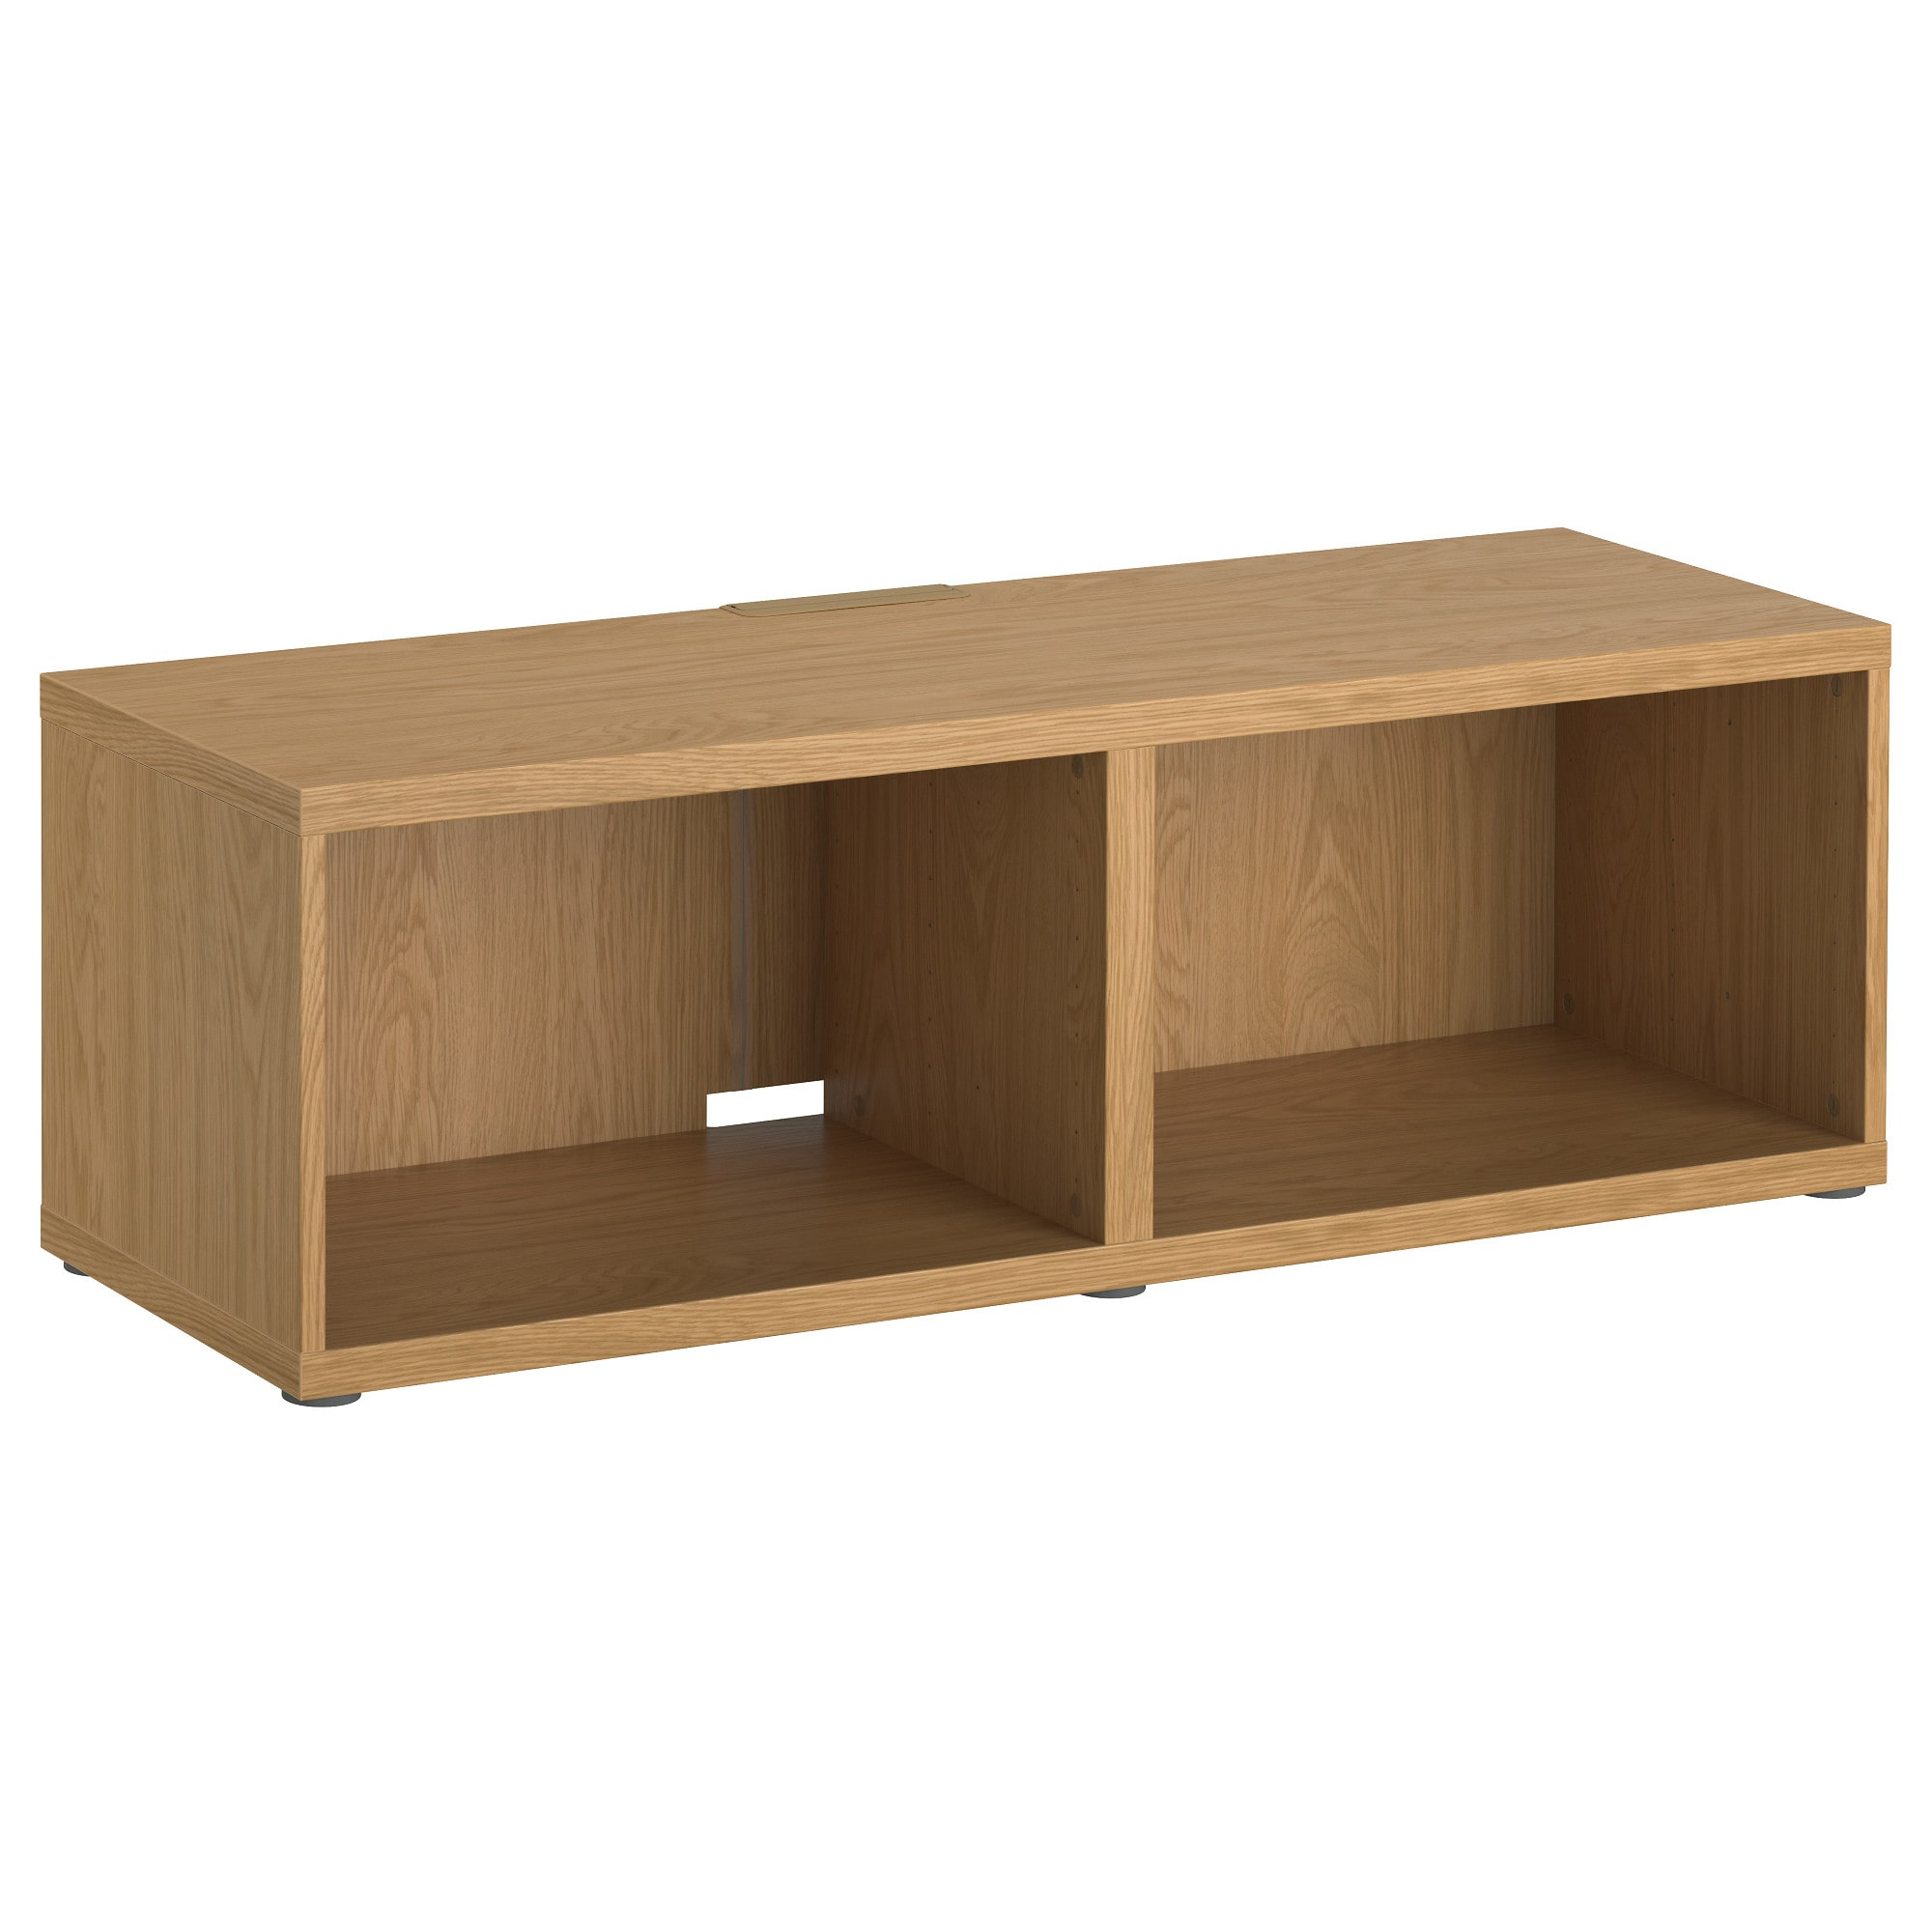 Pine Wood Tv Stands Inside Best And Newest Tv Stands & Tv Units (View 18 of 20)